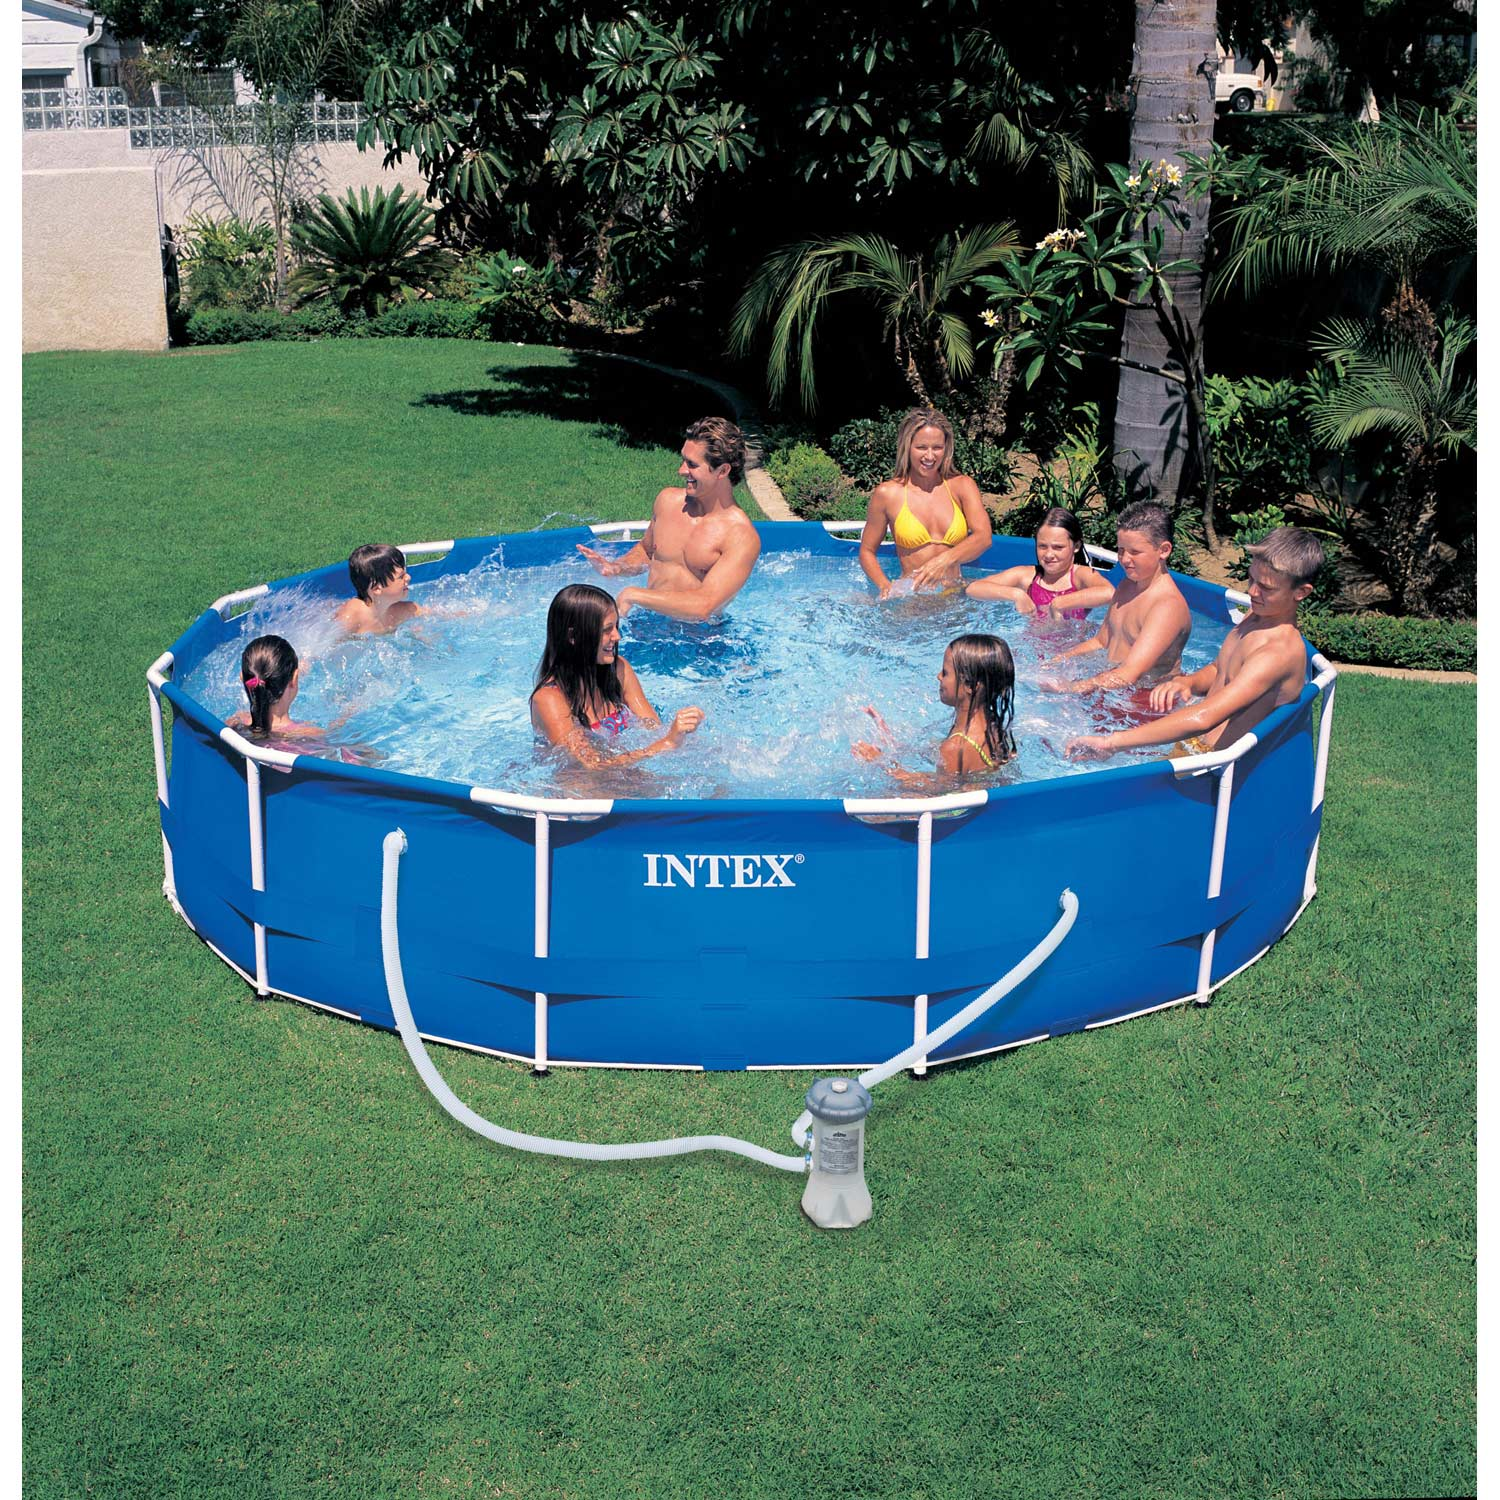 Piscine hors sol autoportante tubulaire metal frame intex for Piscine hors sol 4m de diametre